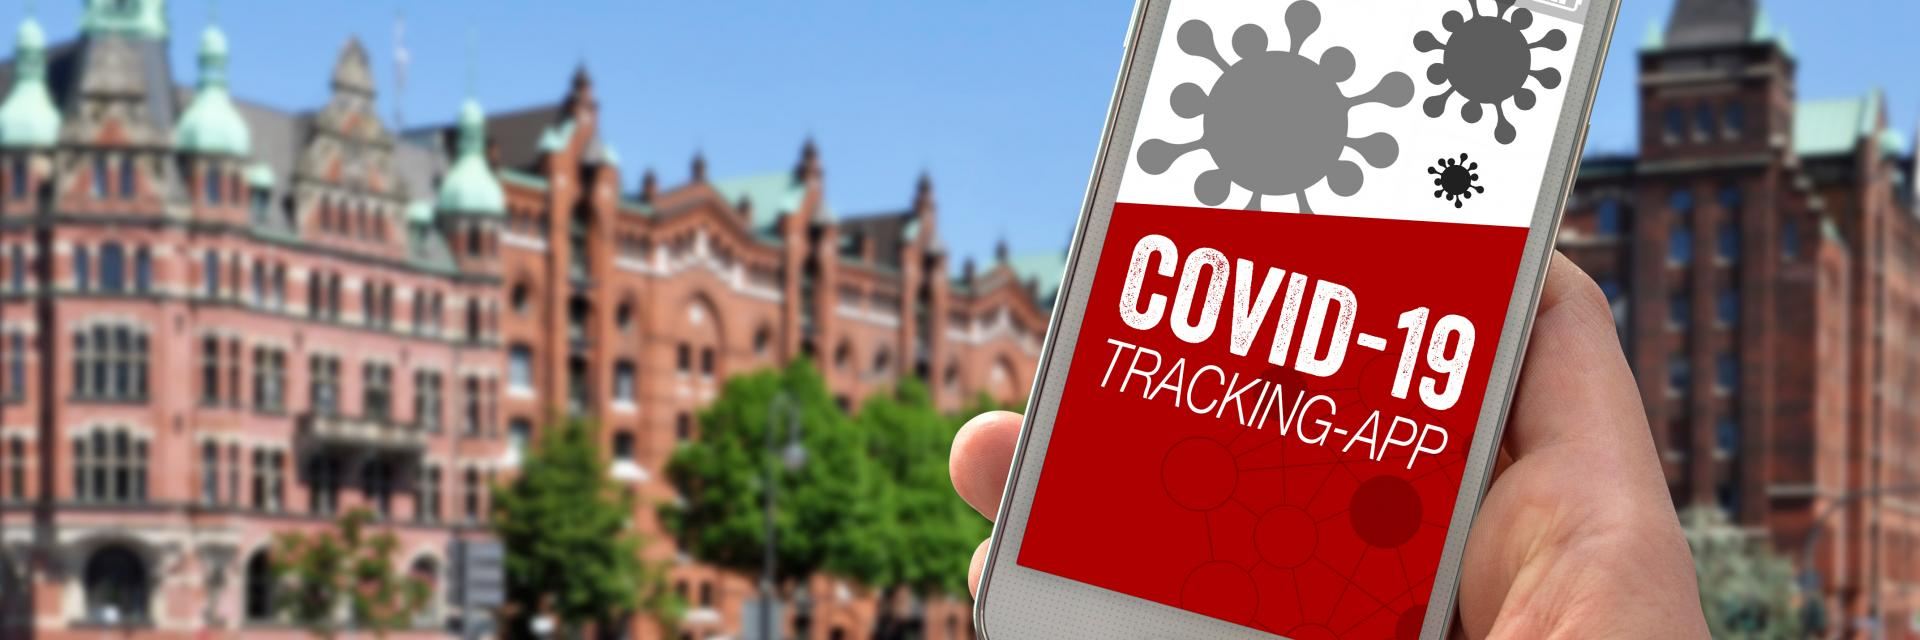 Covid tracking app